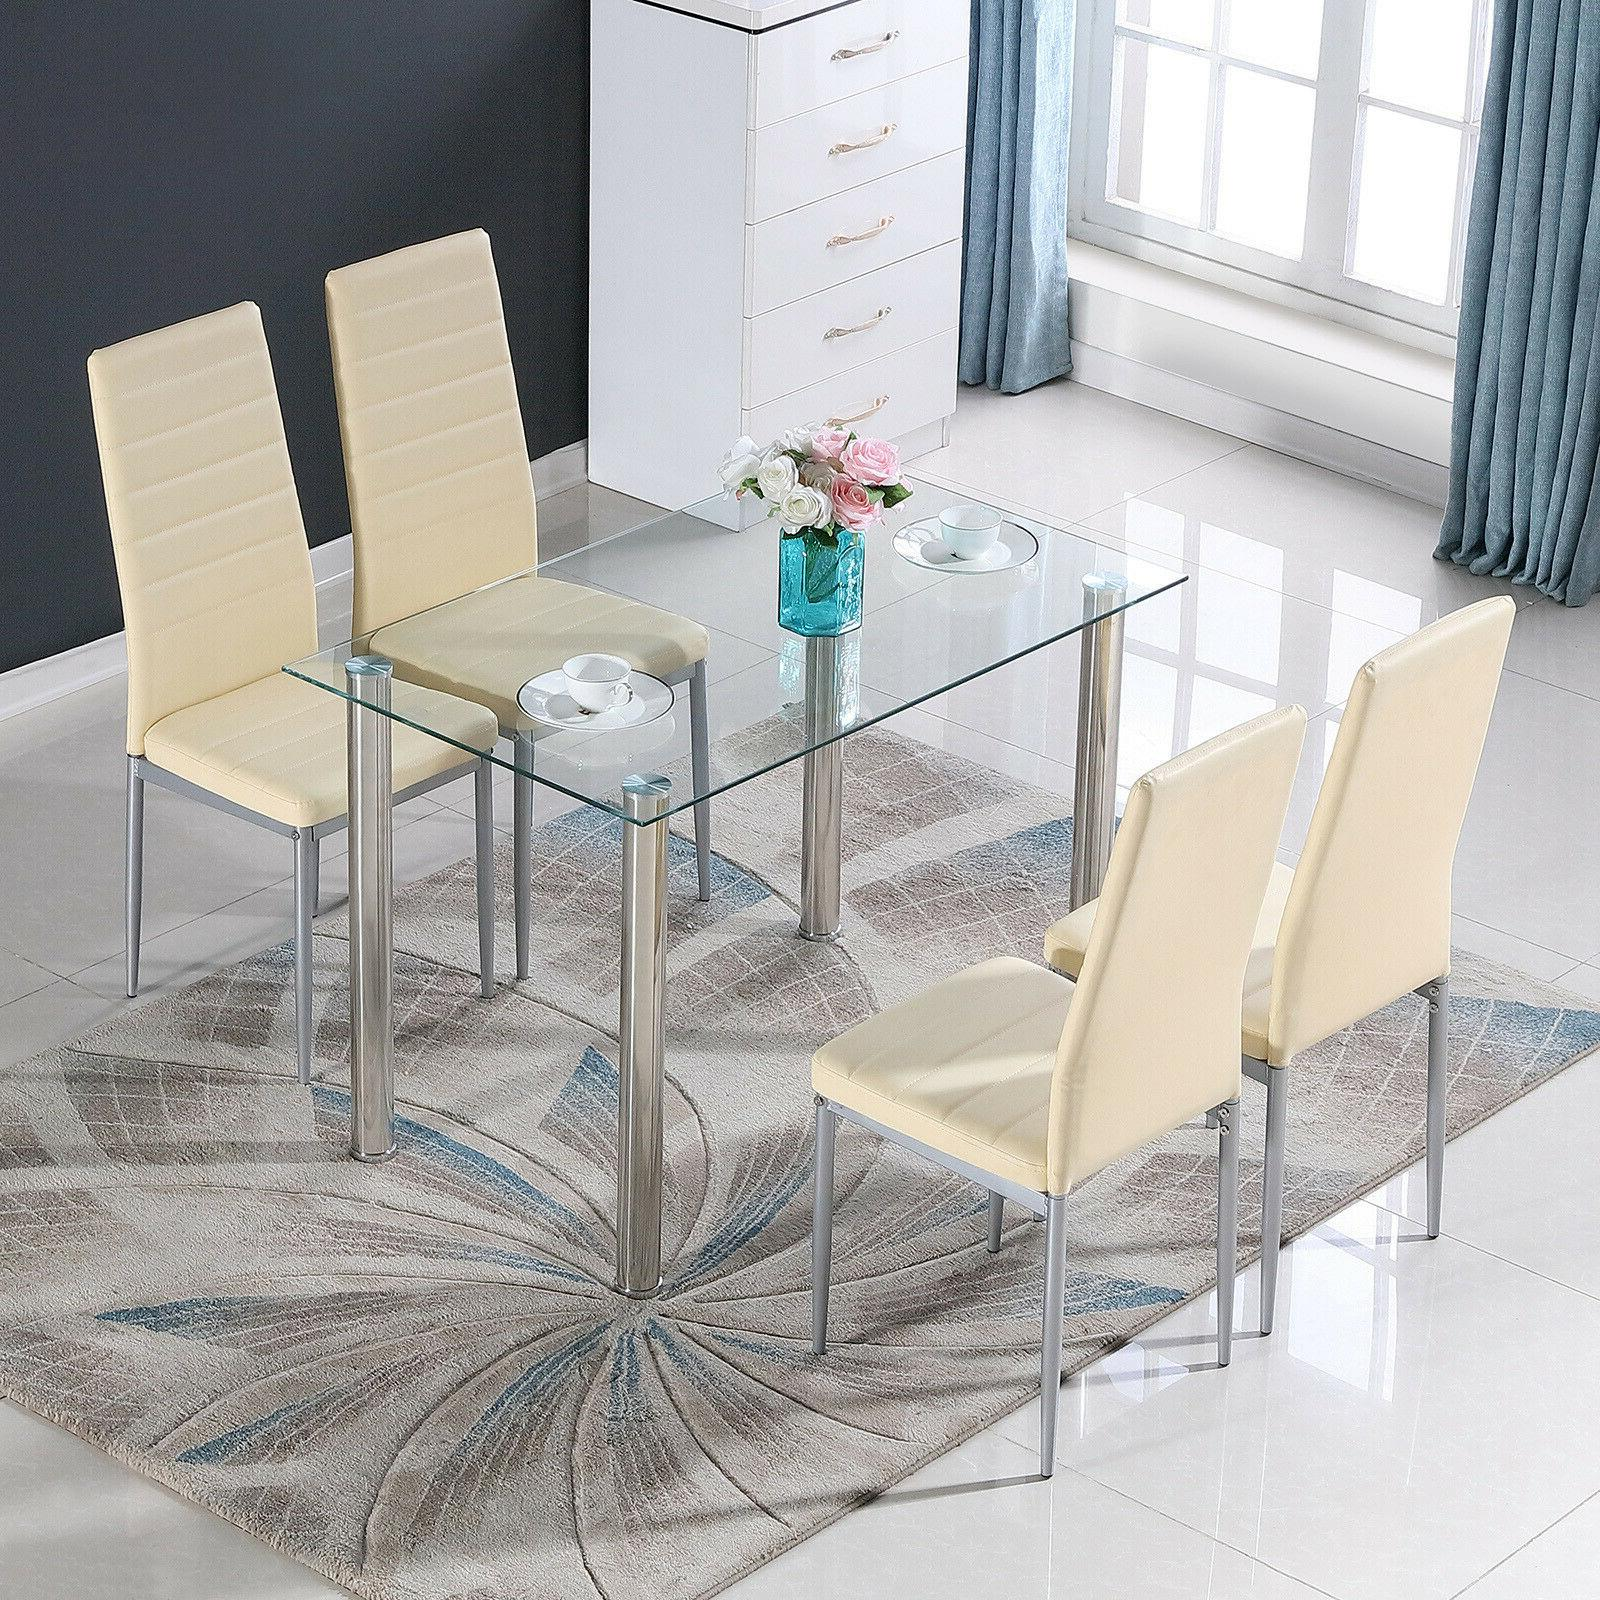 5 Piece Dining Table Sets Metal 4 PU Leather Chairs Room